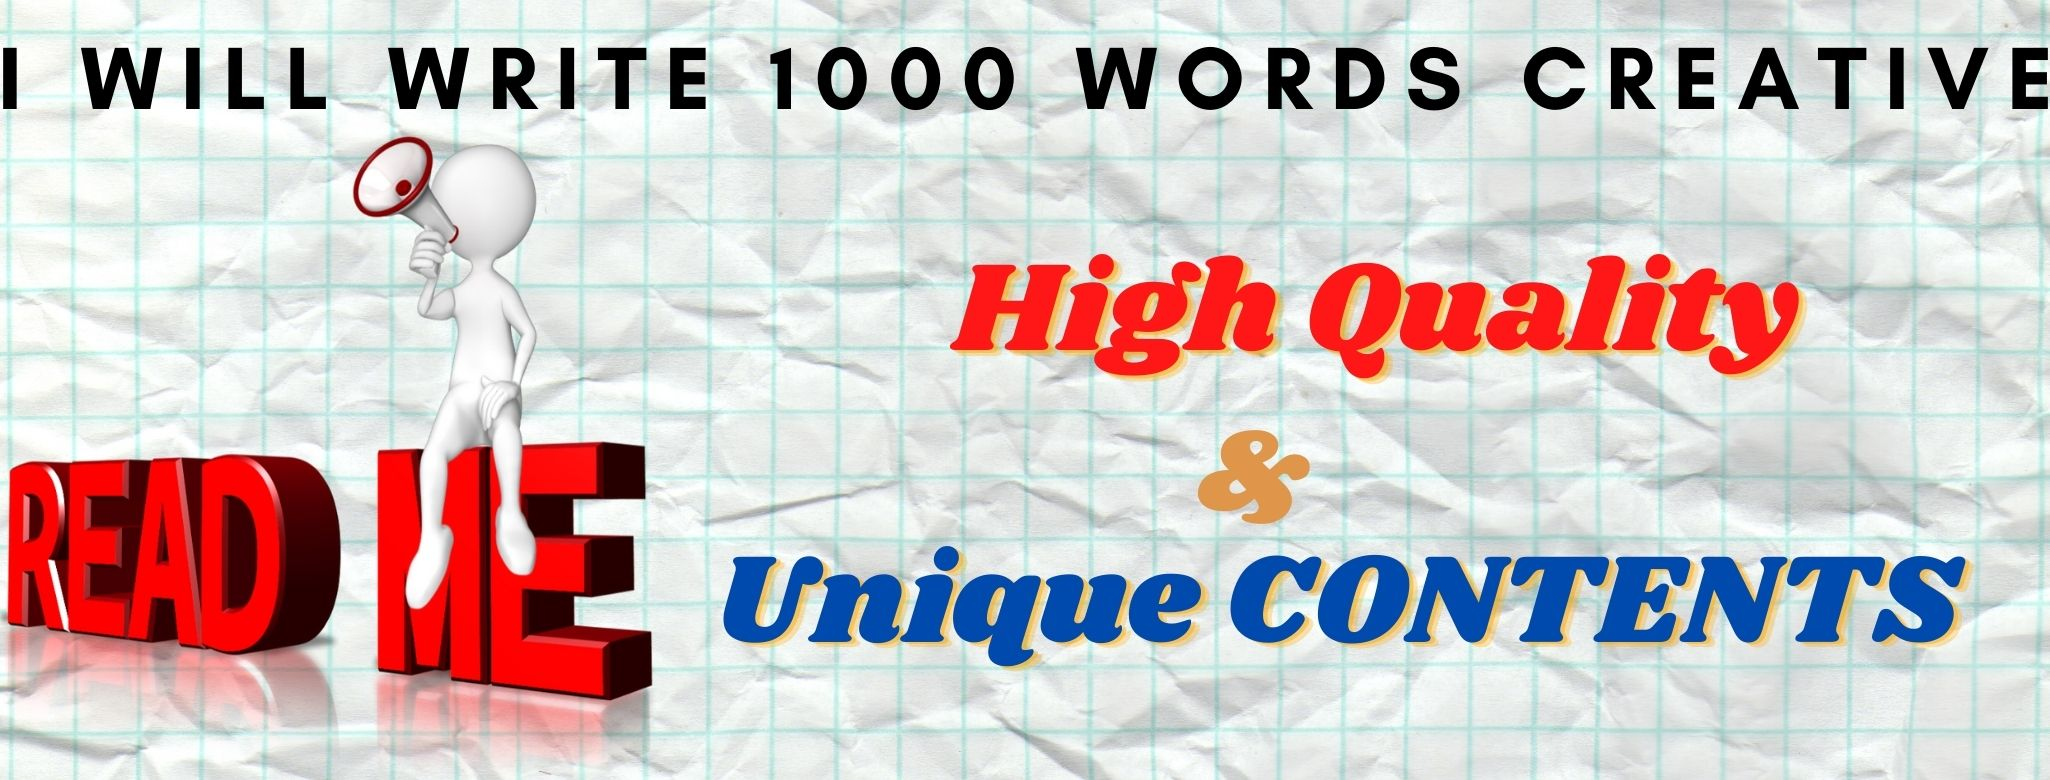 40 hour 1000 words creative article writing